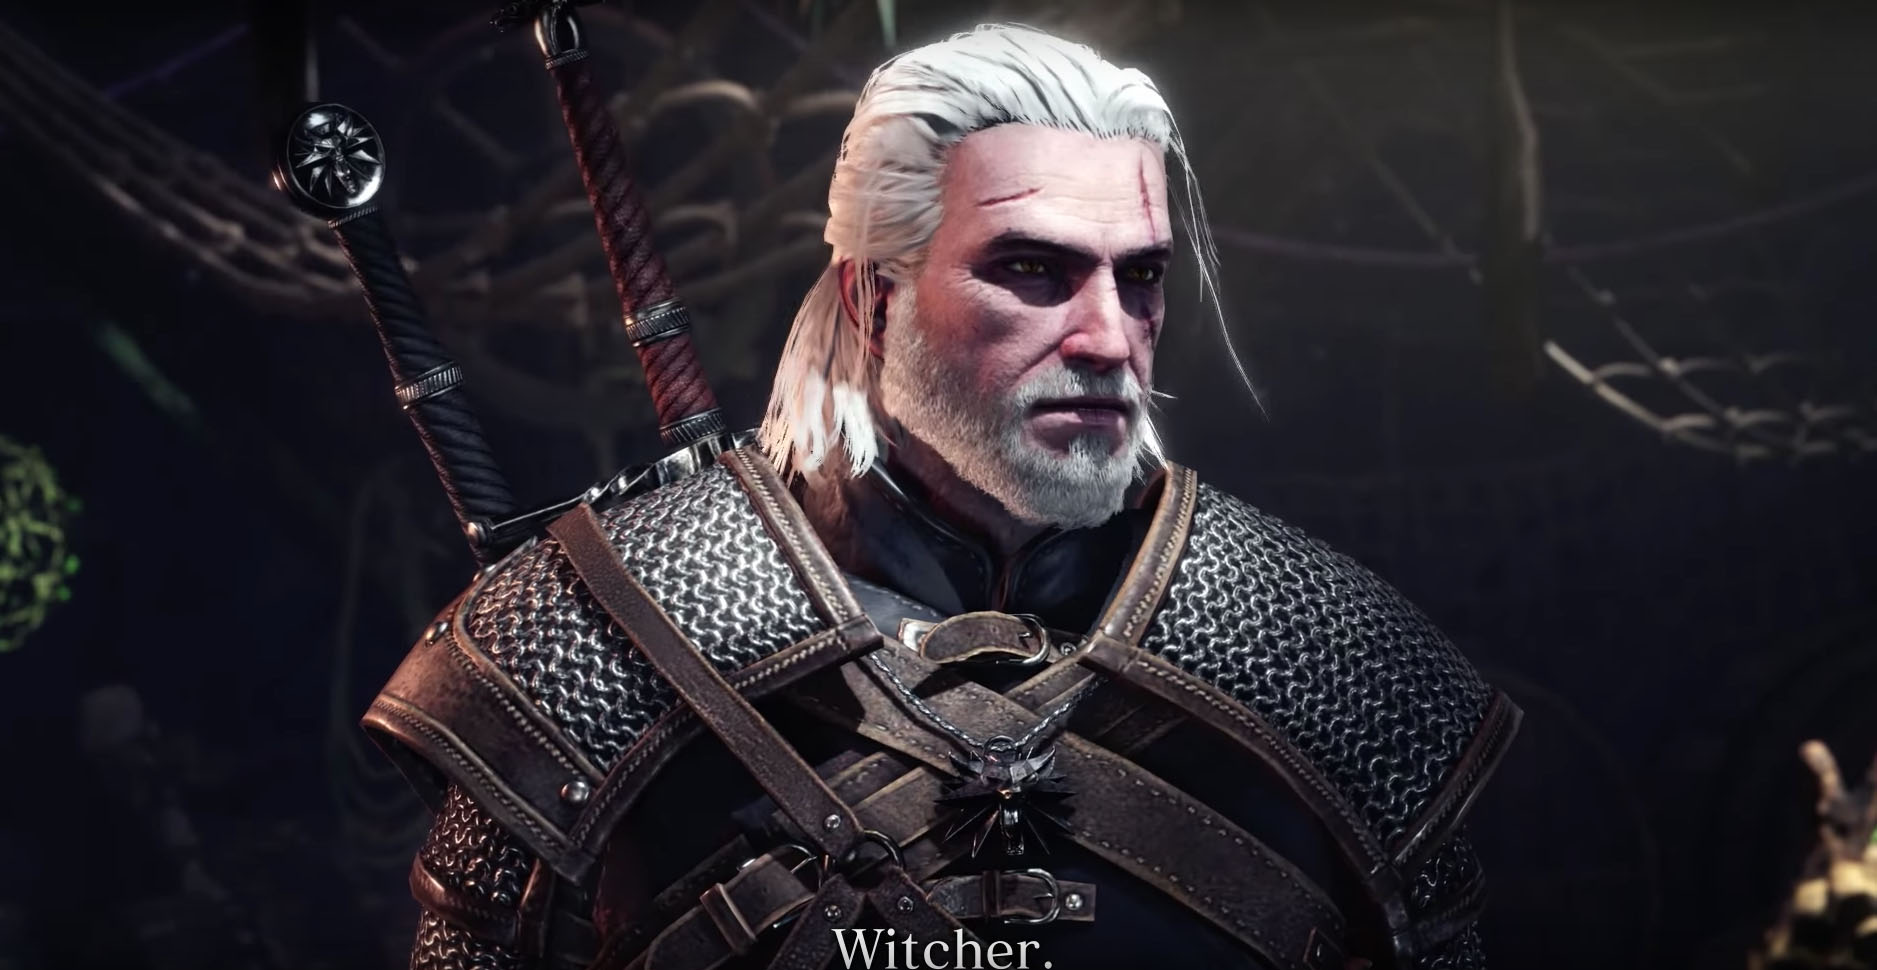 Play as Geralt in Monster Hunter: World with 2019's The